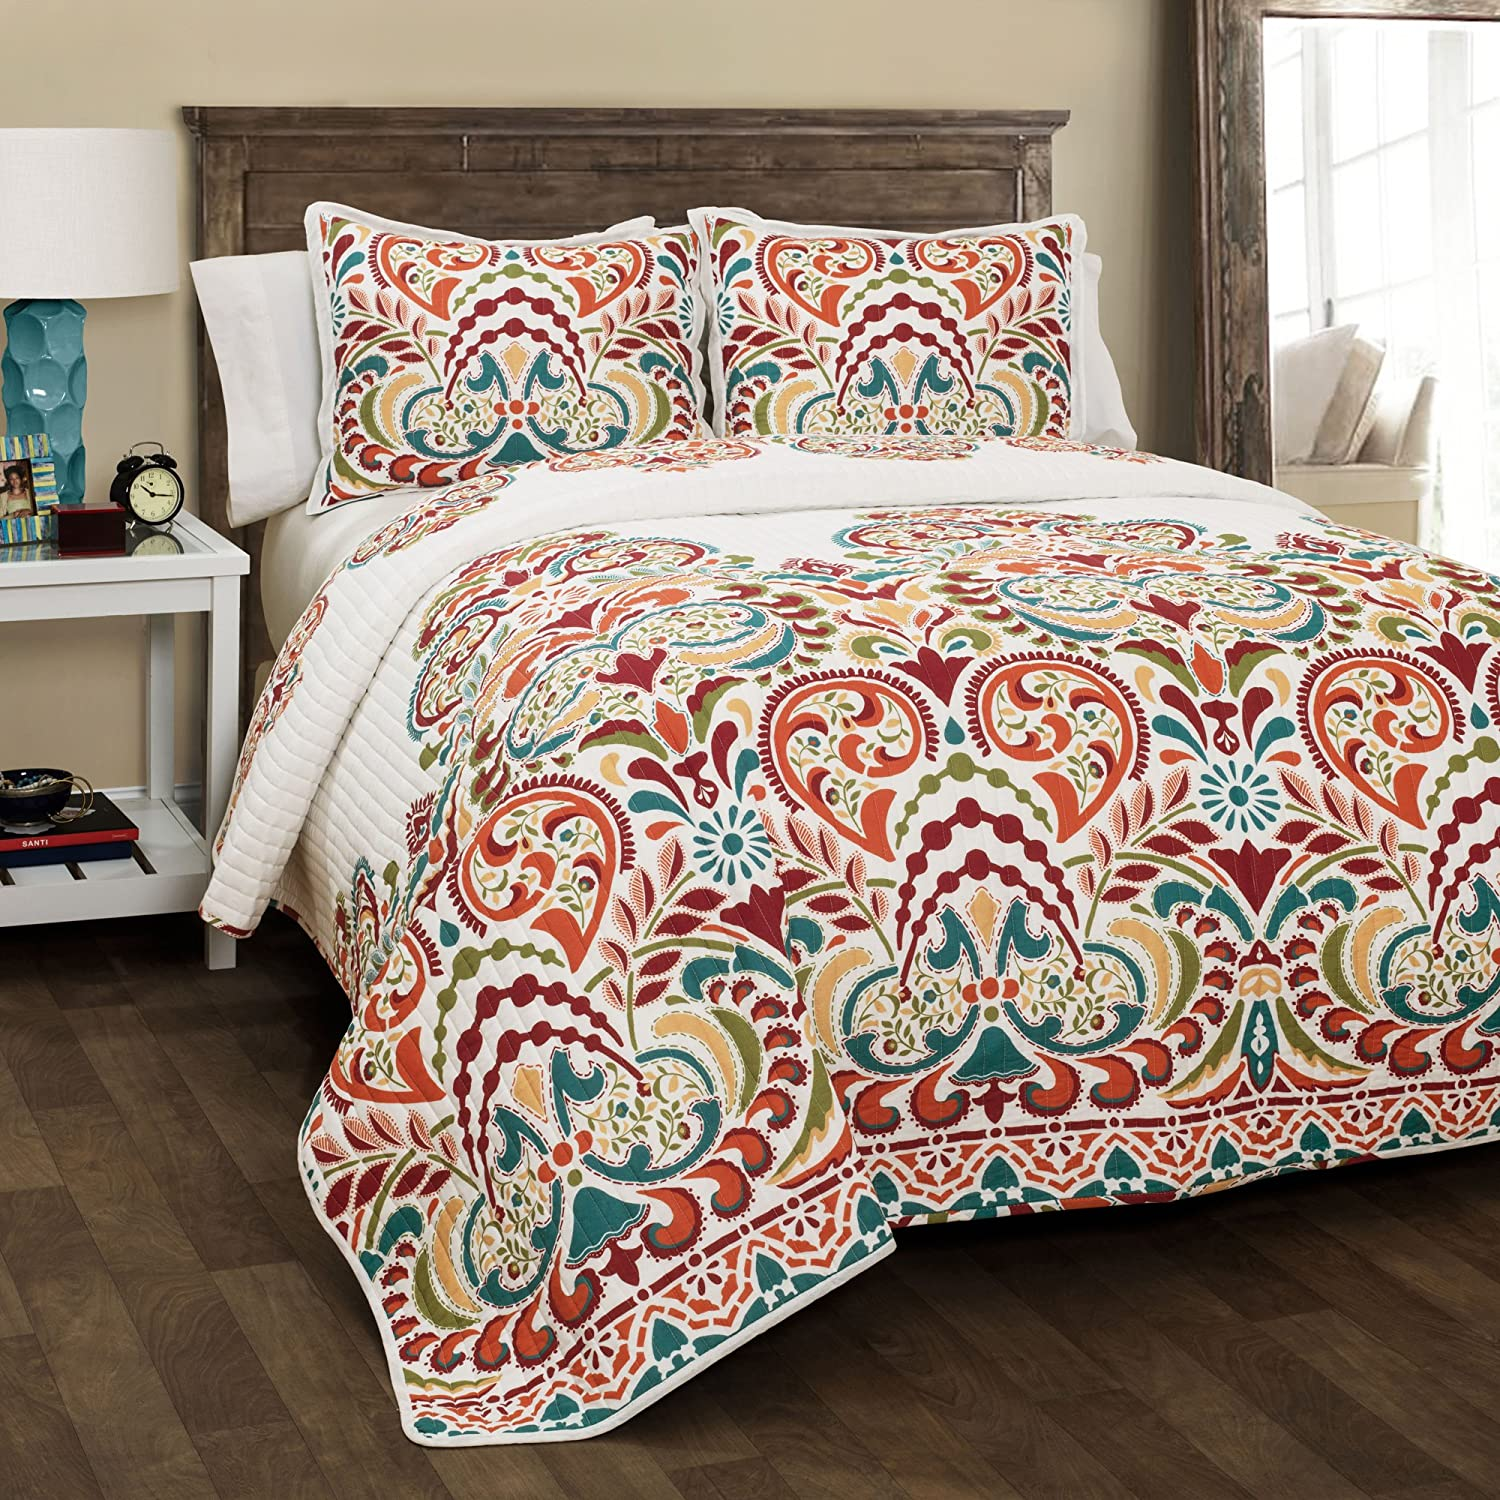 Lush Decor Clara Quilt 3 Piece Reversible Bedding Set, King, Turquoise and Tangerine